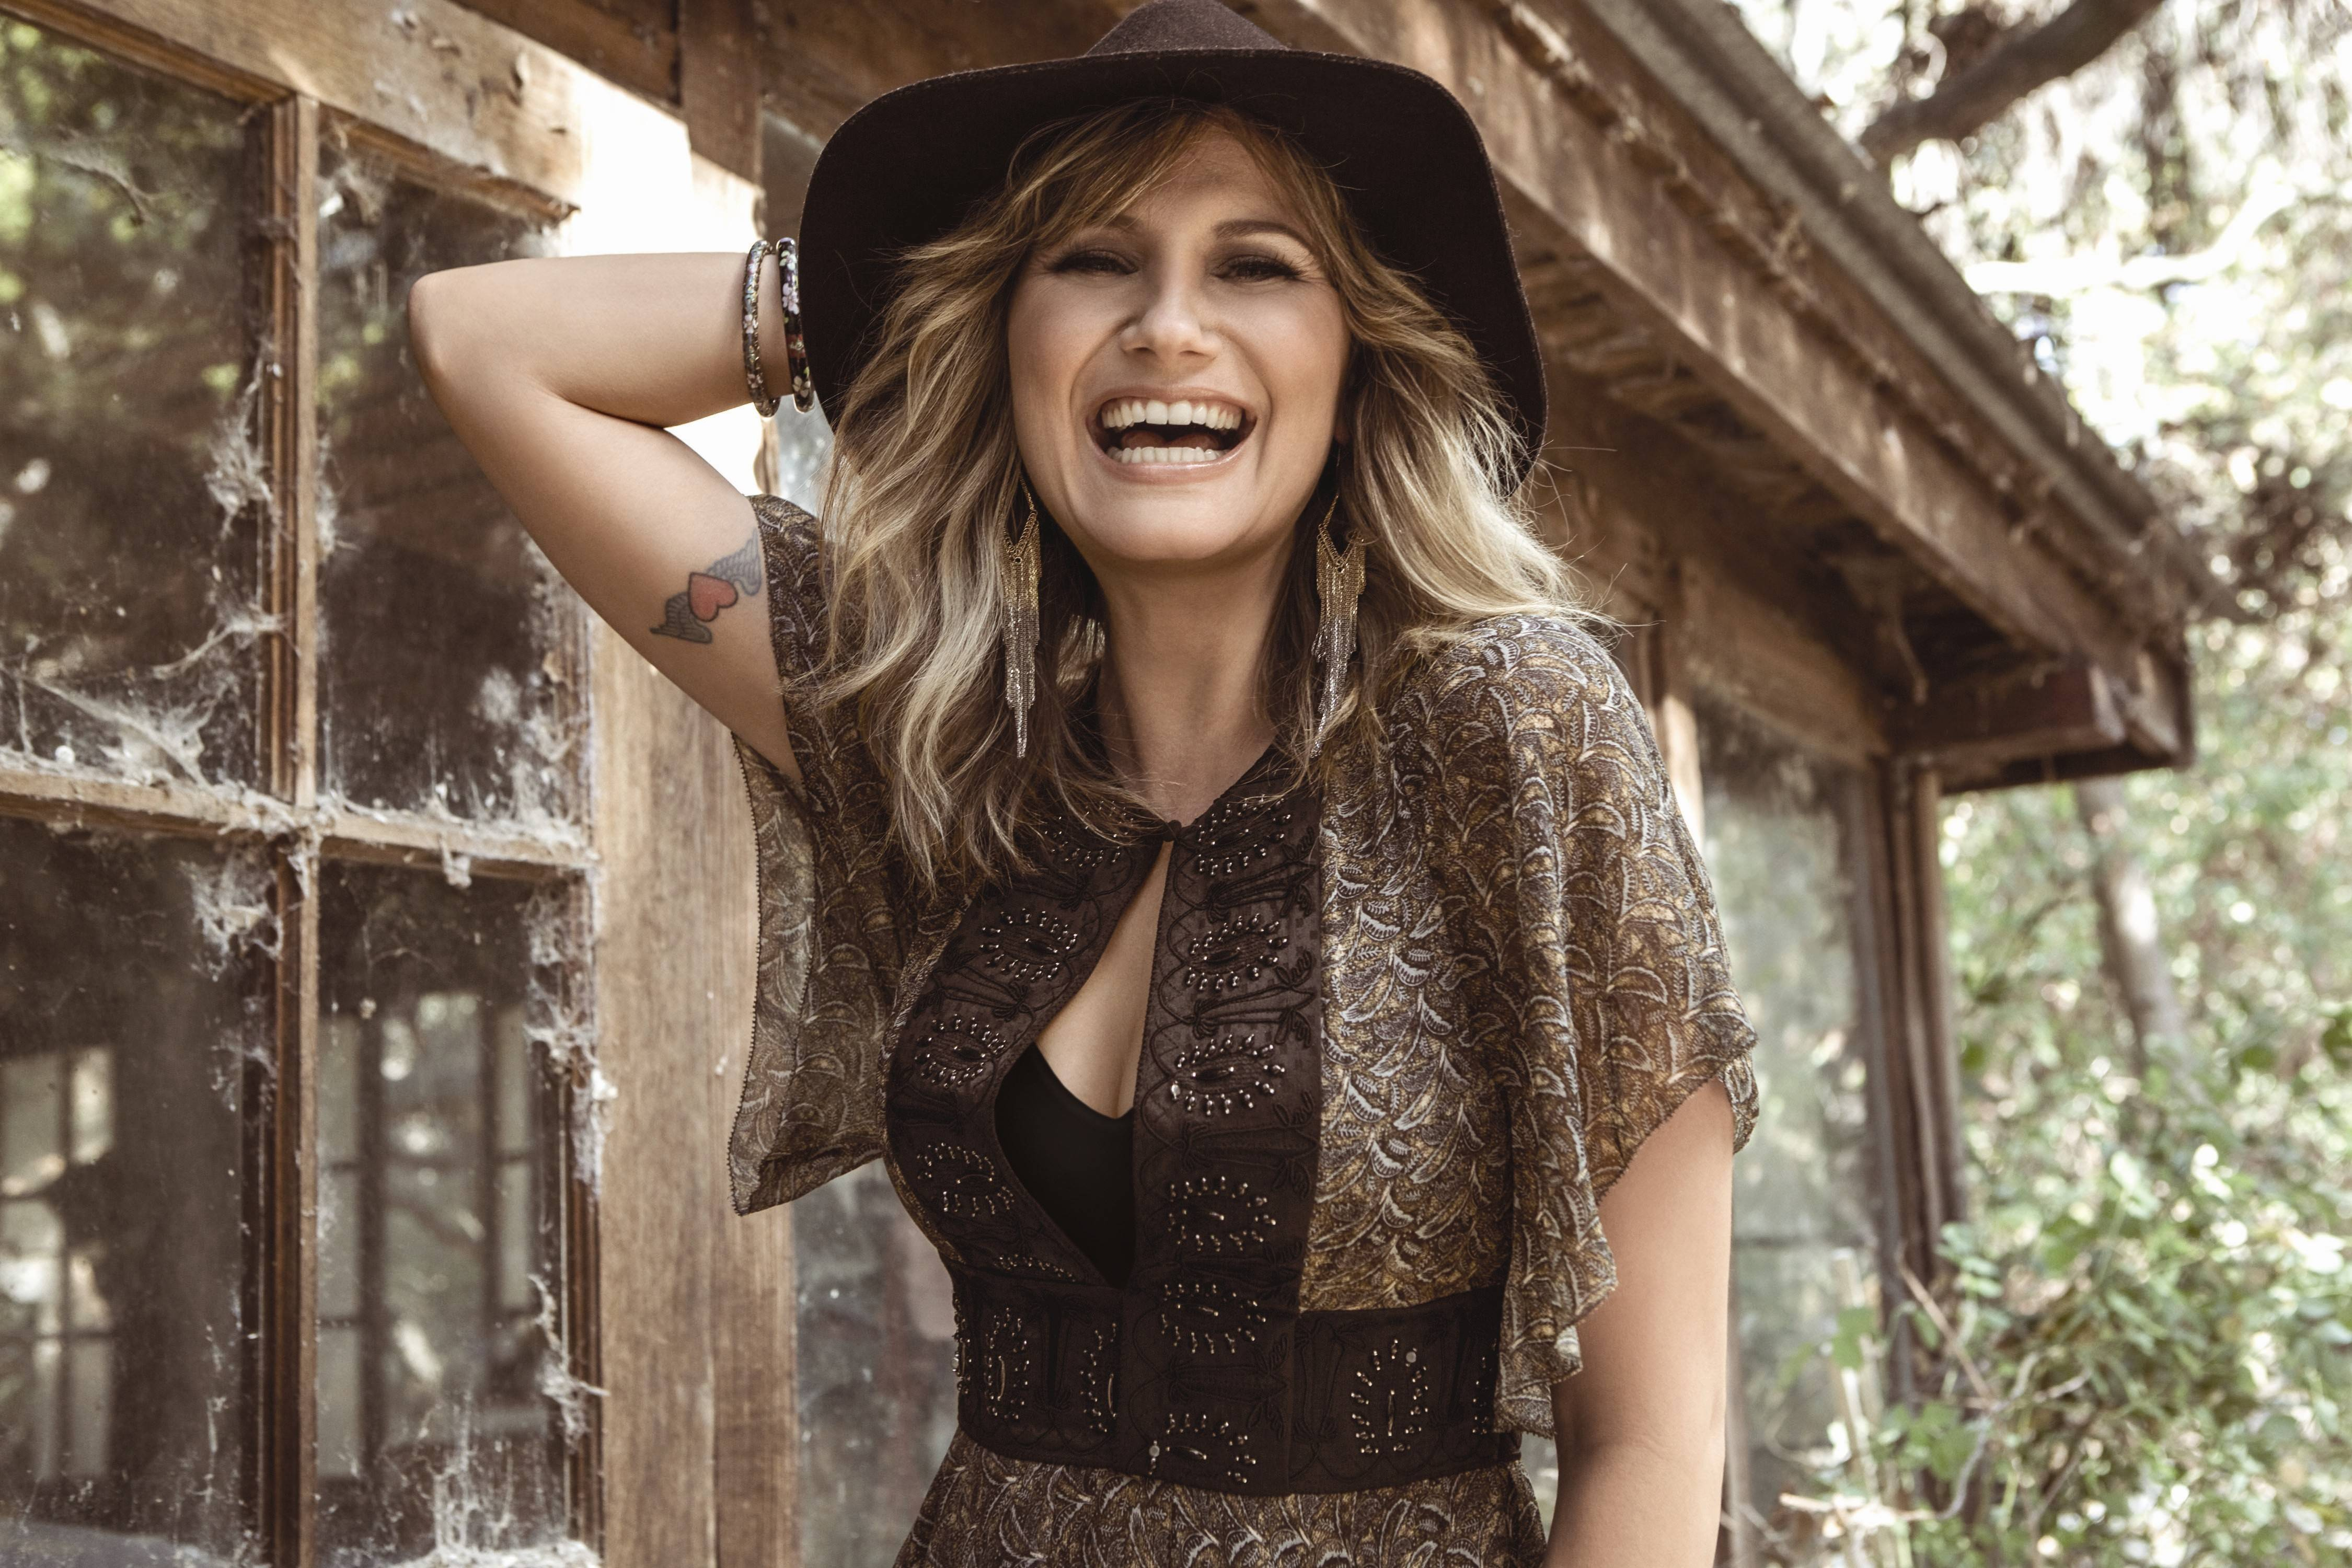 Jennifer Nettles brings her That Girl Tour to RiverEdge Park in Aurora on Friday, Aug. 29.